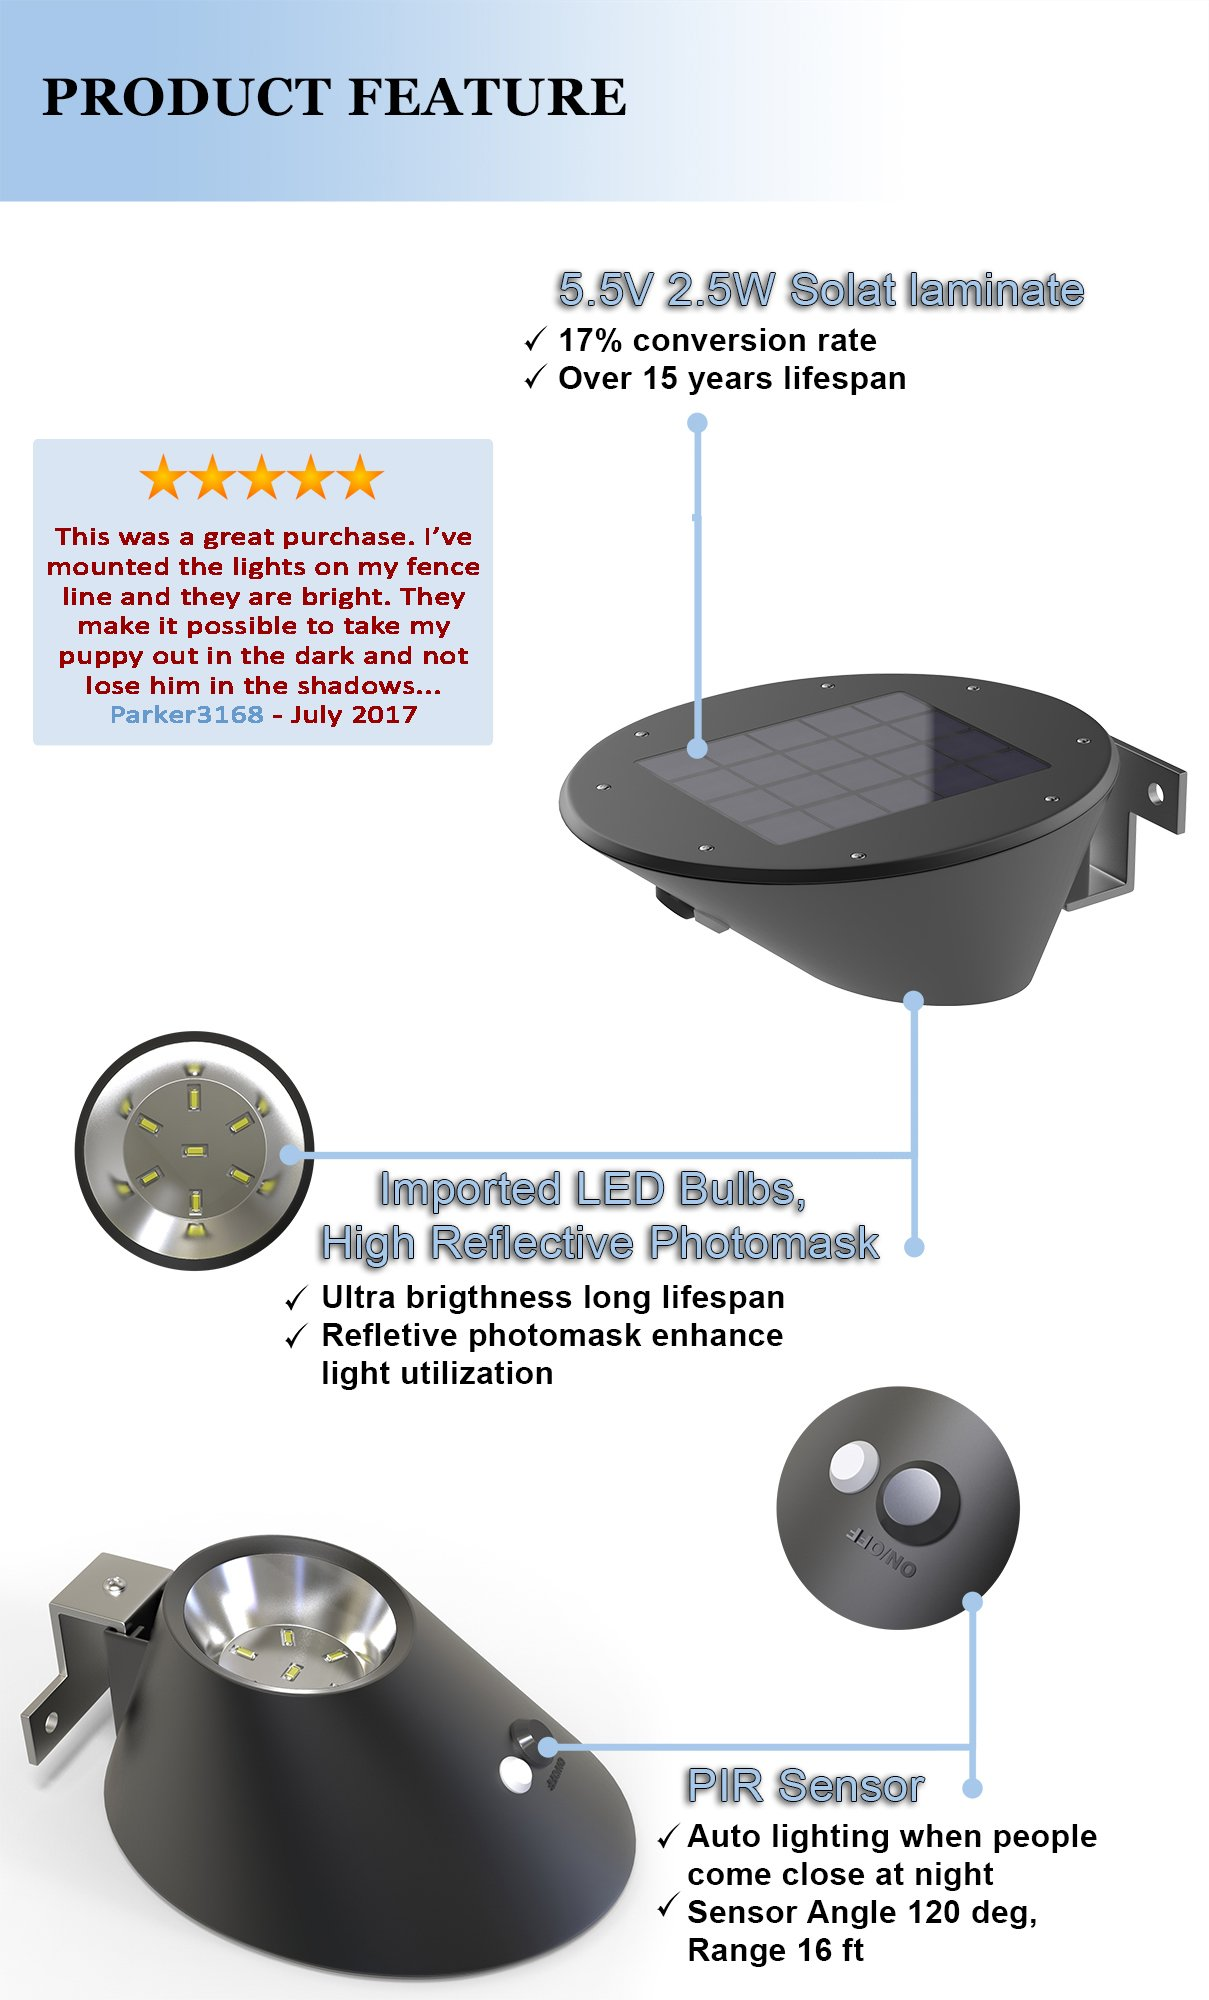 Solar Light Fixture for Outdoor - Higher Quality LED Than Most on The Market | Battery Powered Pathway & Walkway Lights | The Best Bright Outside Large Power LED for Security | Lasts All Night.